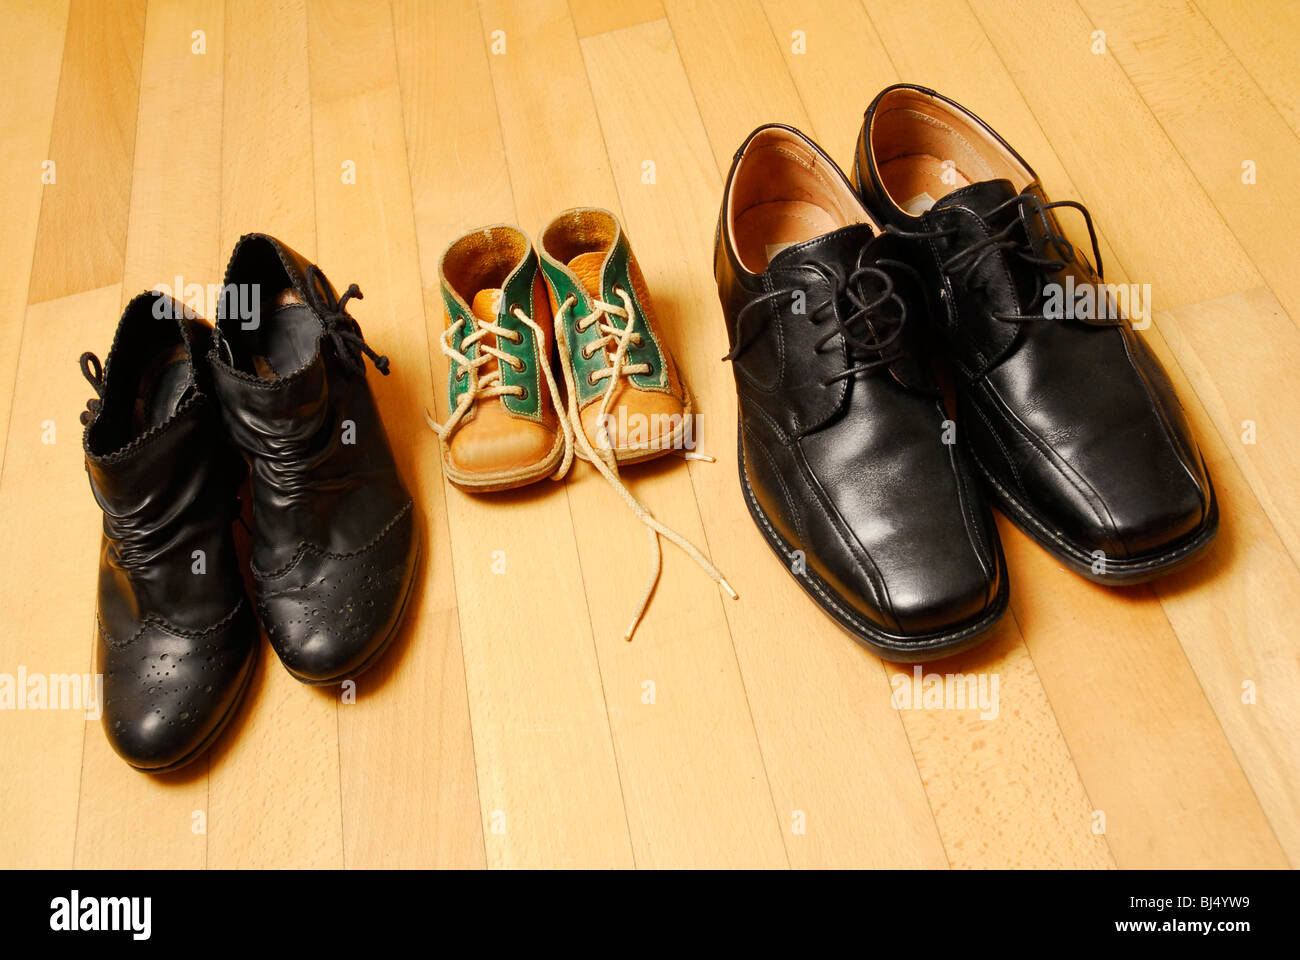 Shoes of a family, symbolic image for family - Stock Image